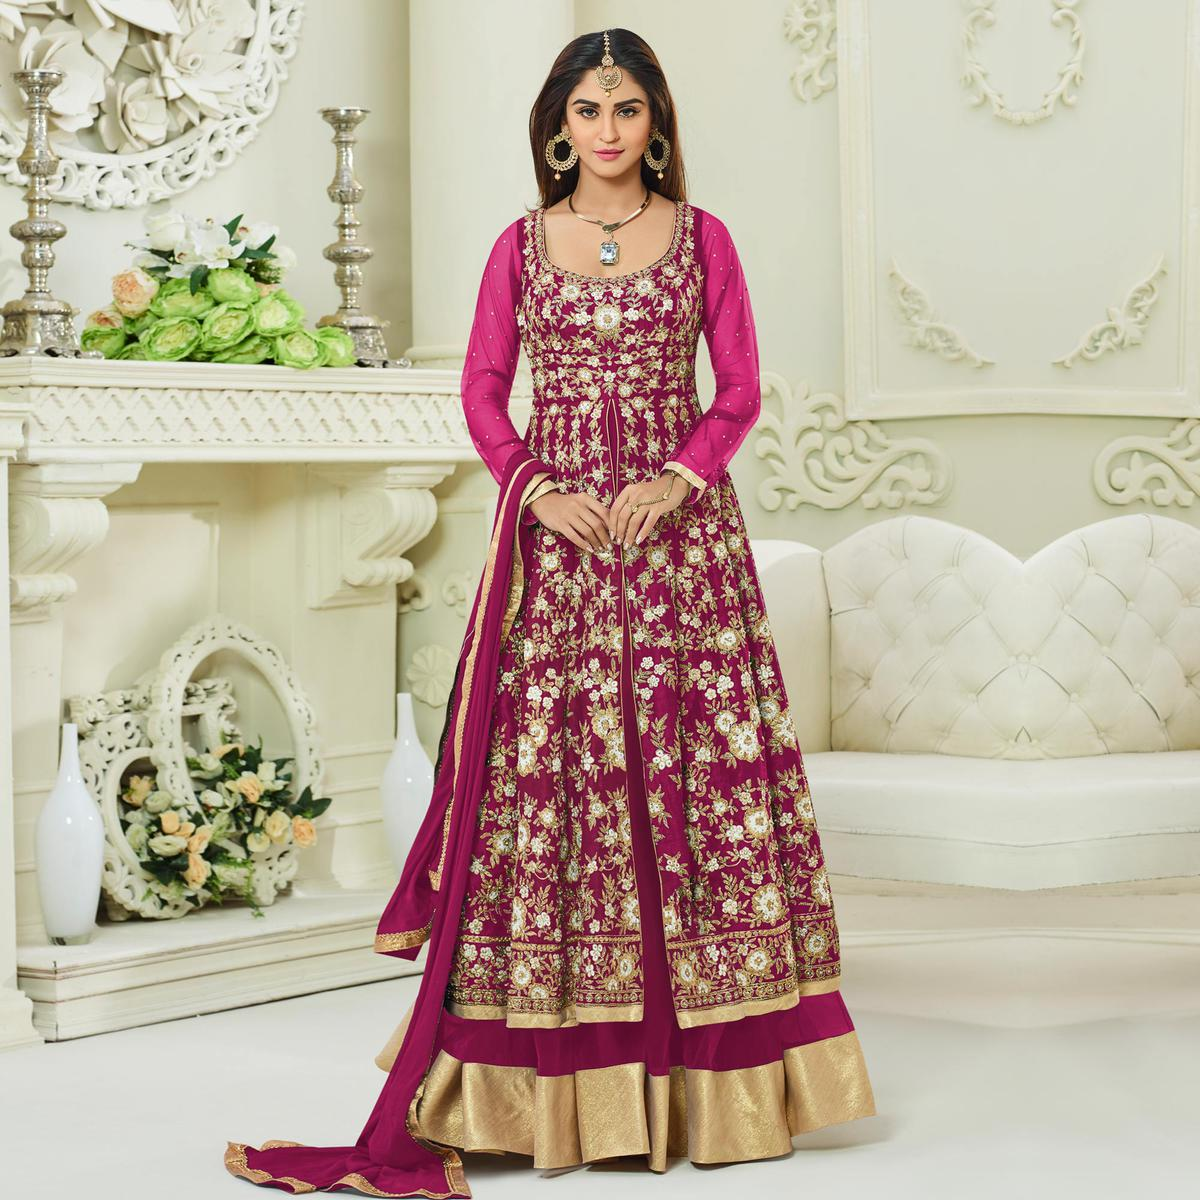 Marvellous Deep Pink Colored Designer Embroidered Mulberry Silk Anarkali Suit